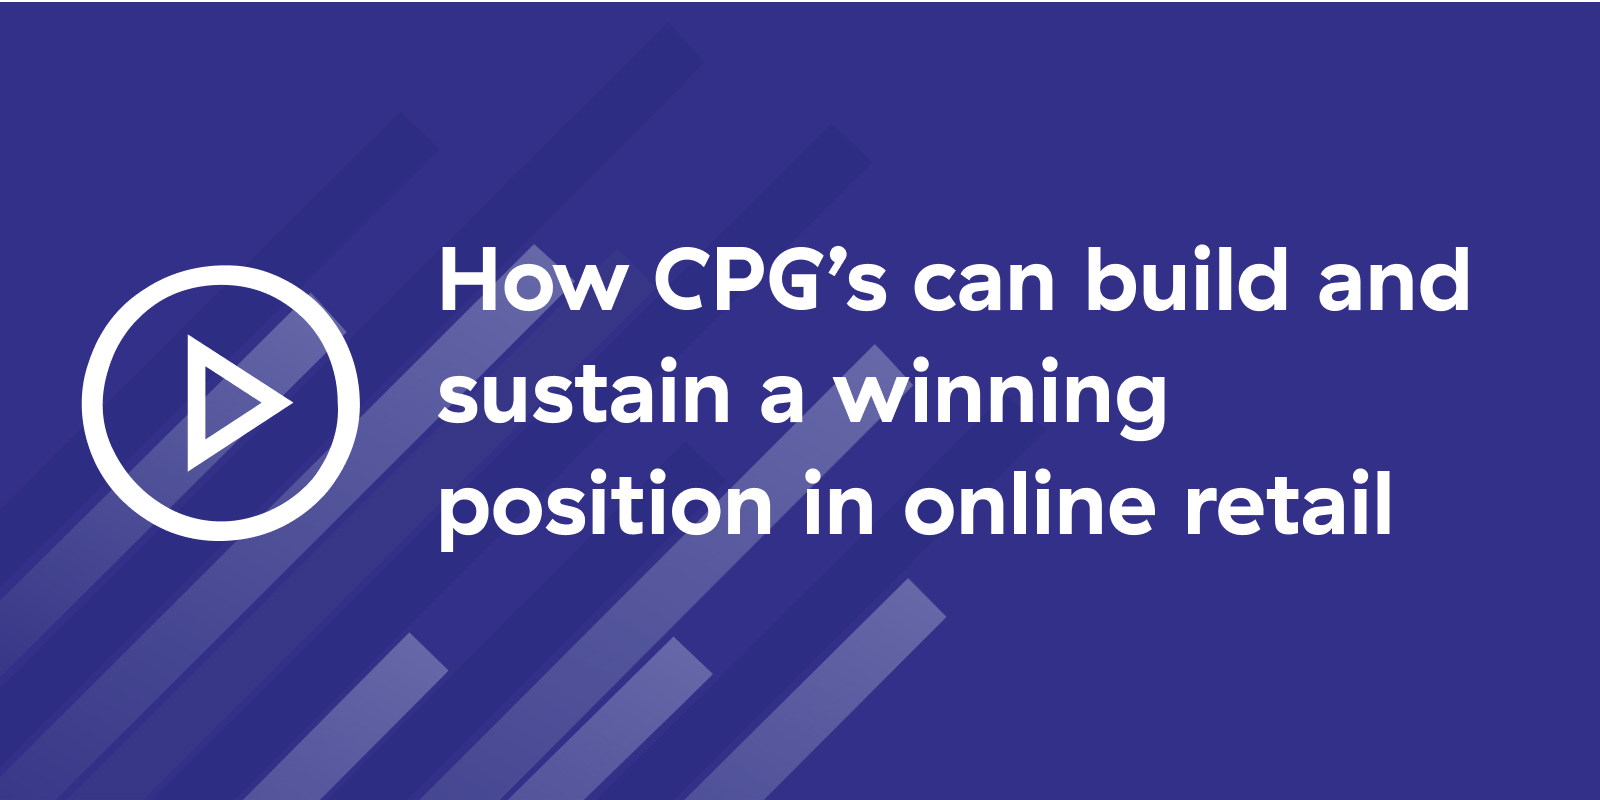 How to build a winning position in online retail